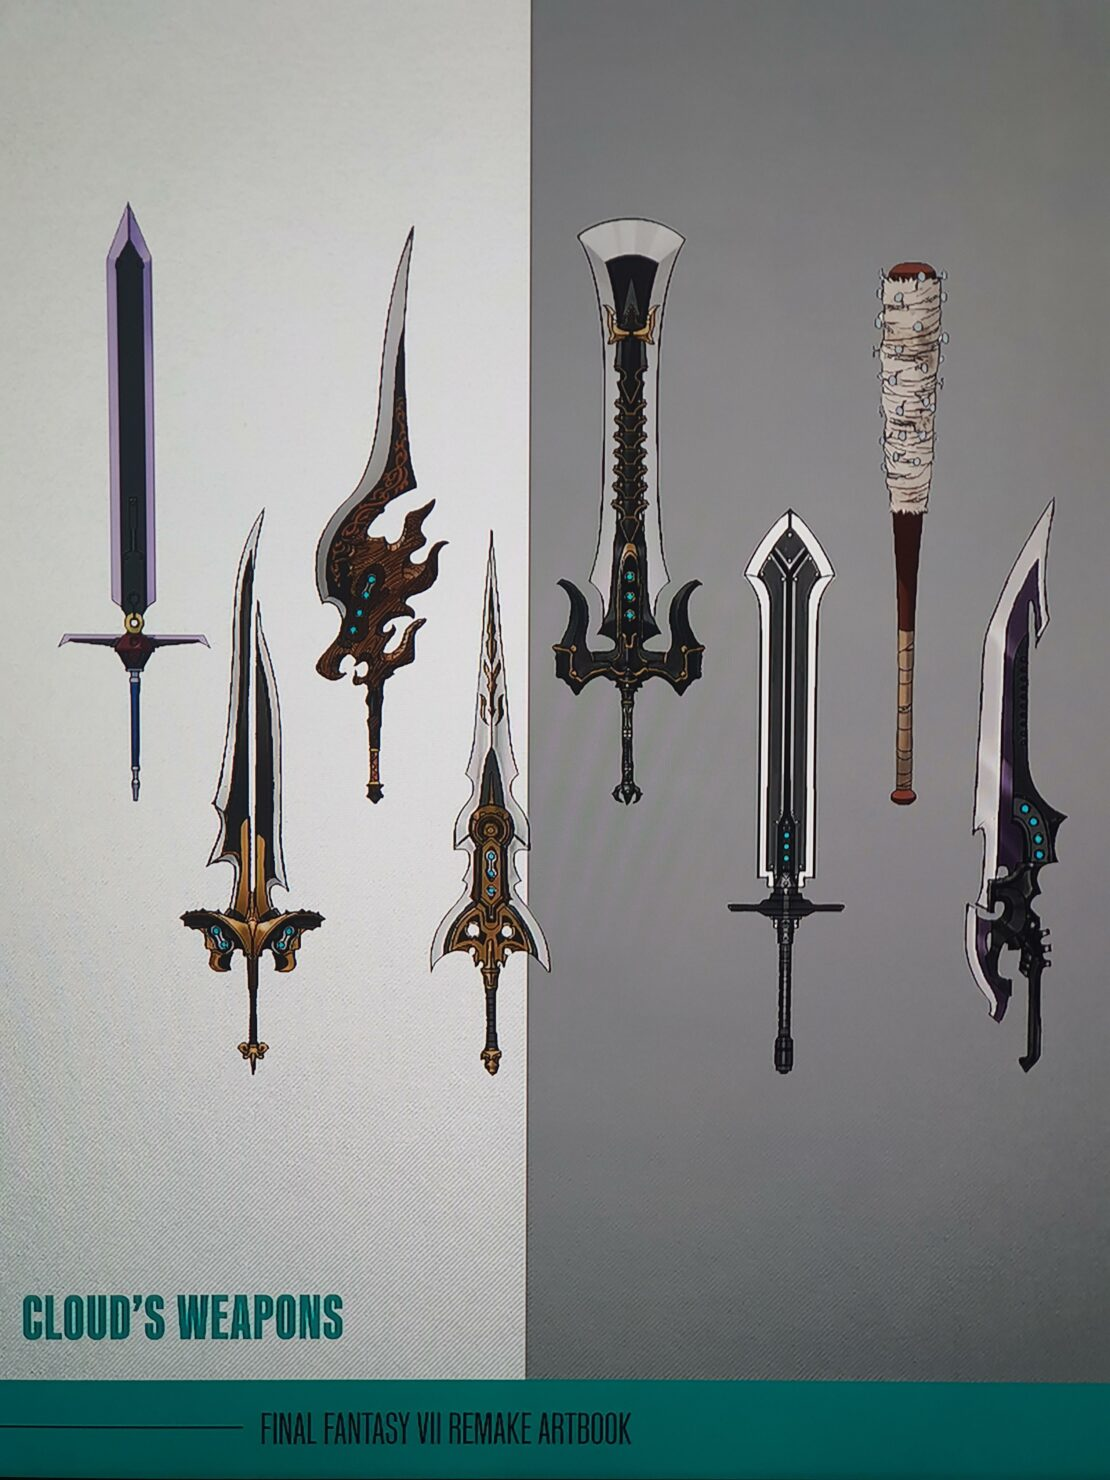 Final Fantasy Vii Remake Here Are The Concept Art Of The Weapons Cut By The Game